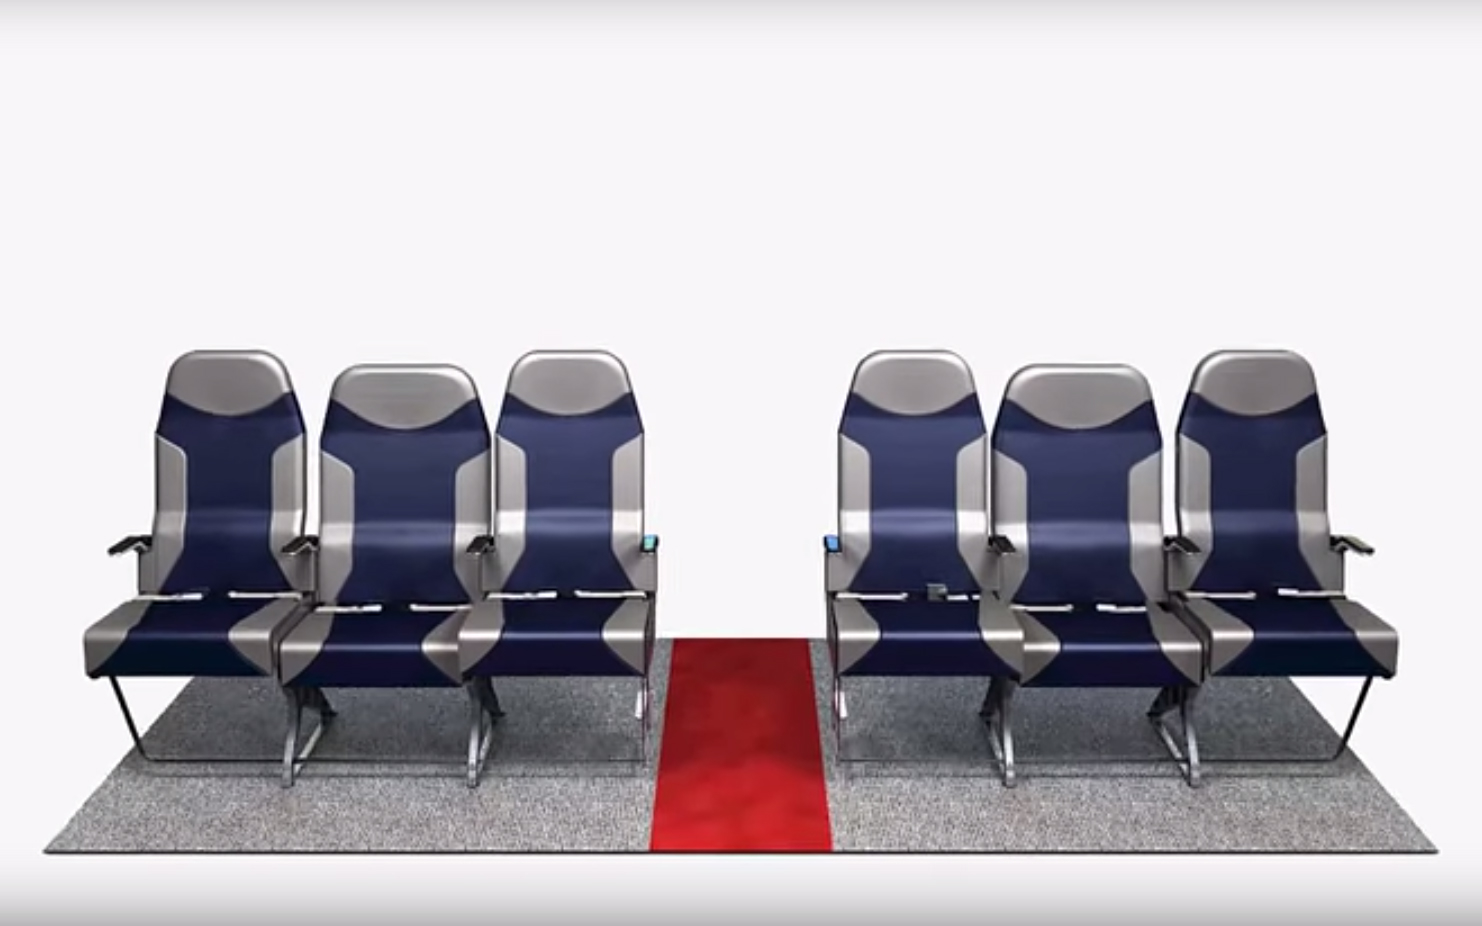 This Brilliant New Design Makes the Middle Row the Best Seat on the Plane